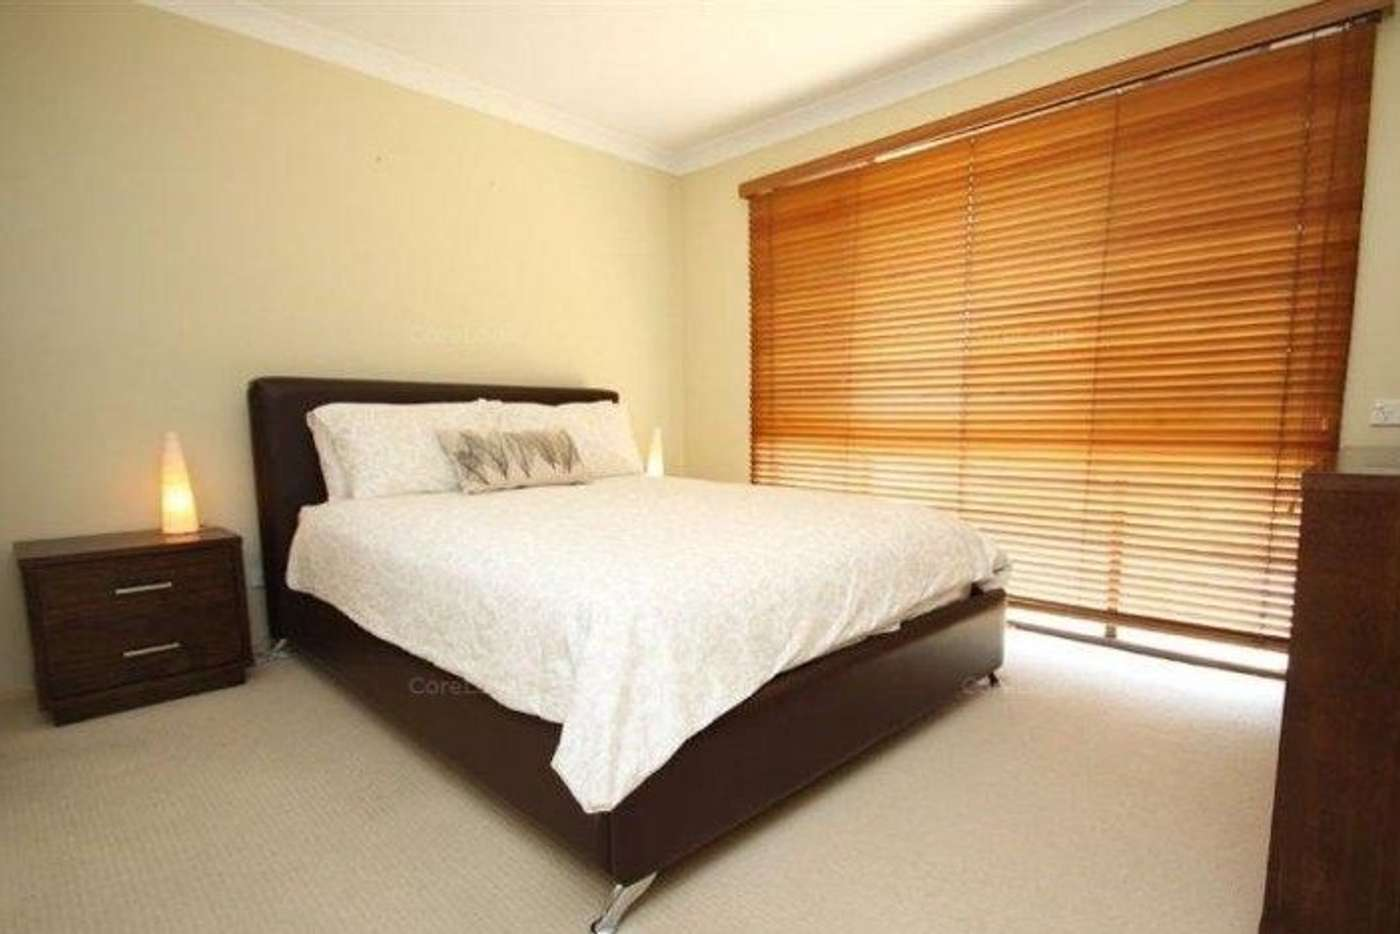 Sixth view of Homely house listing, 2 Kikori Crescent, Runaway Bay QLD 4216